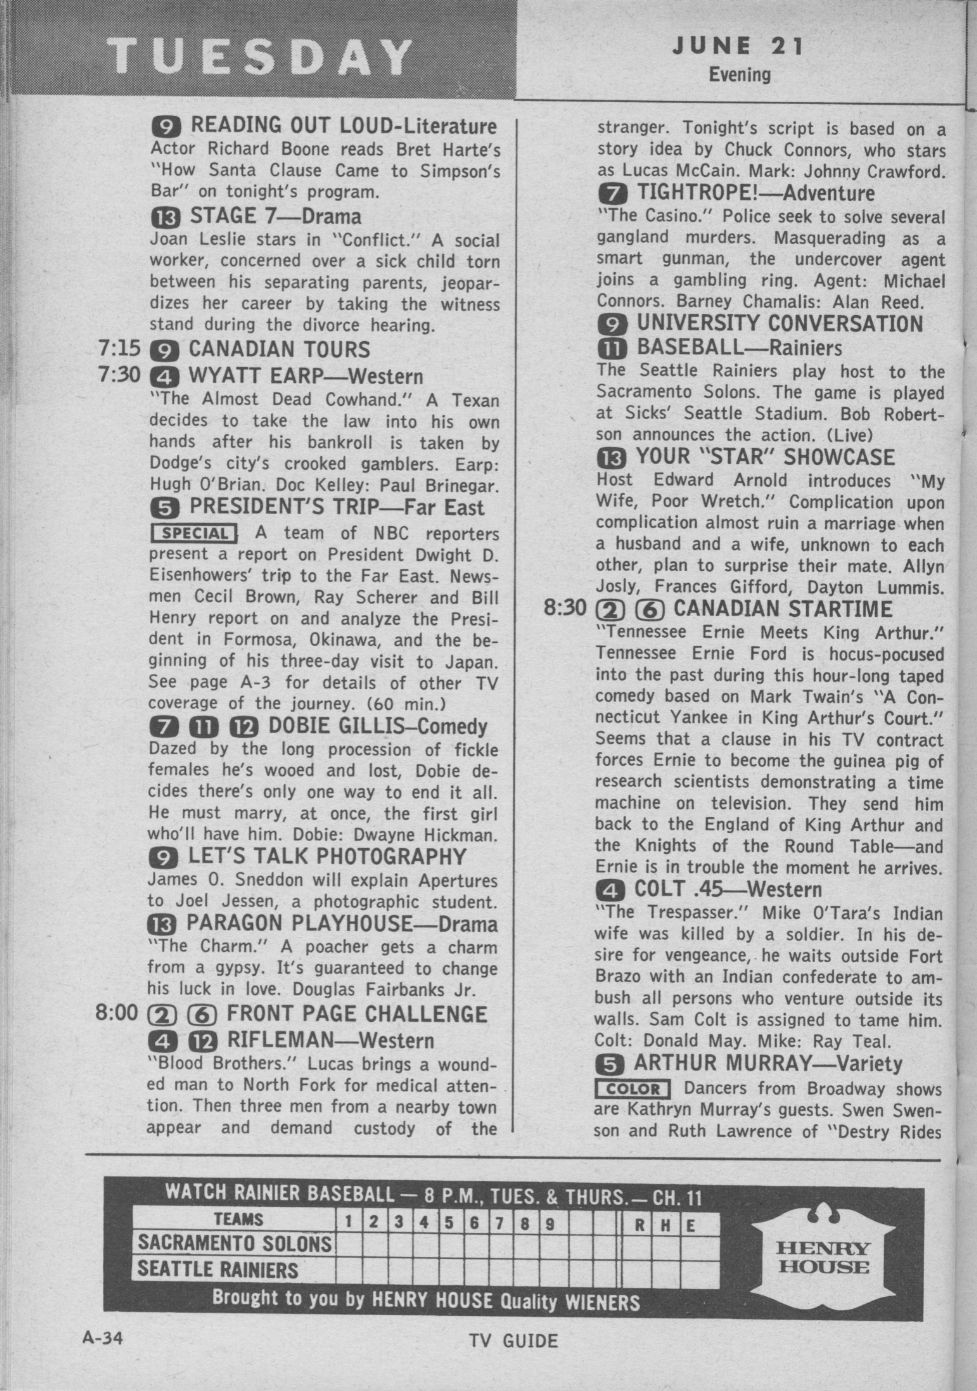 ctva - us tv listings - 1960